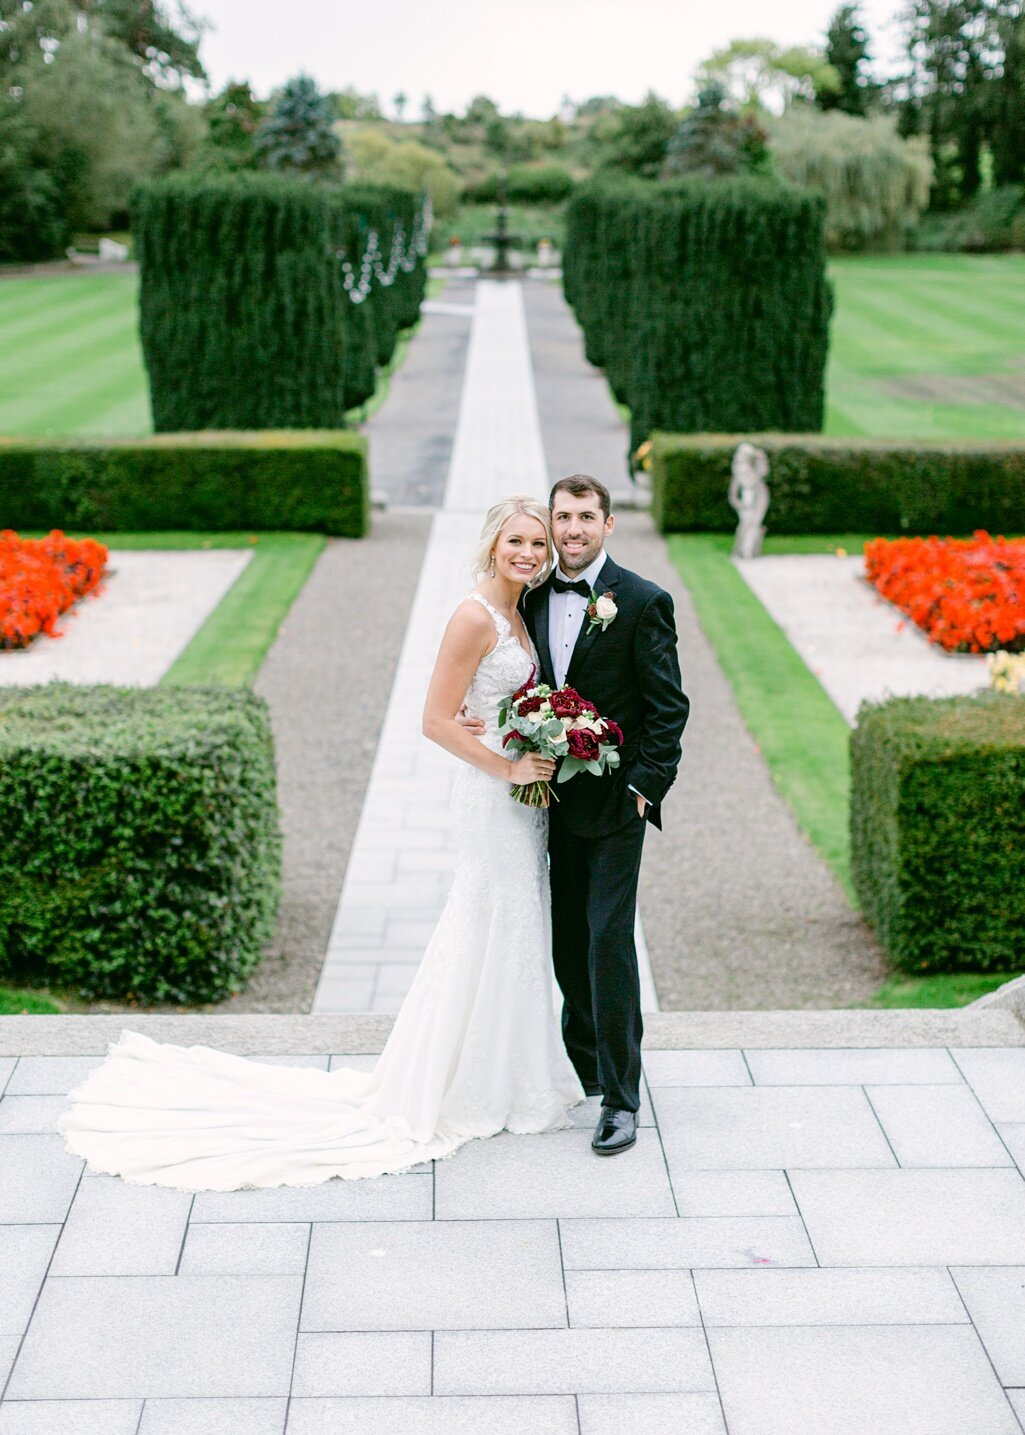 Jessie-Barksdale-Photography_K-Club-Ireland-Destination-Wedding-Photographer_0122